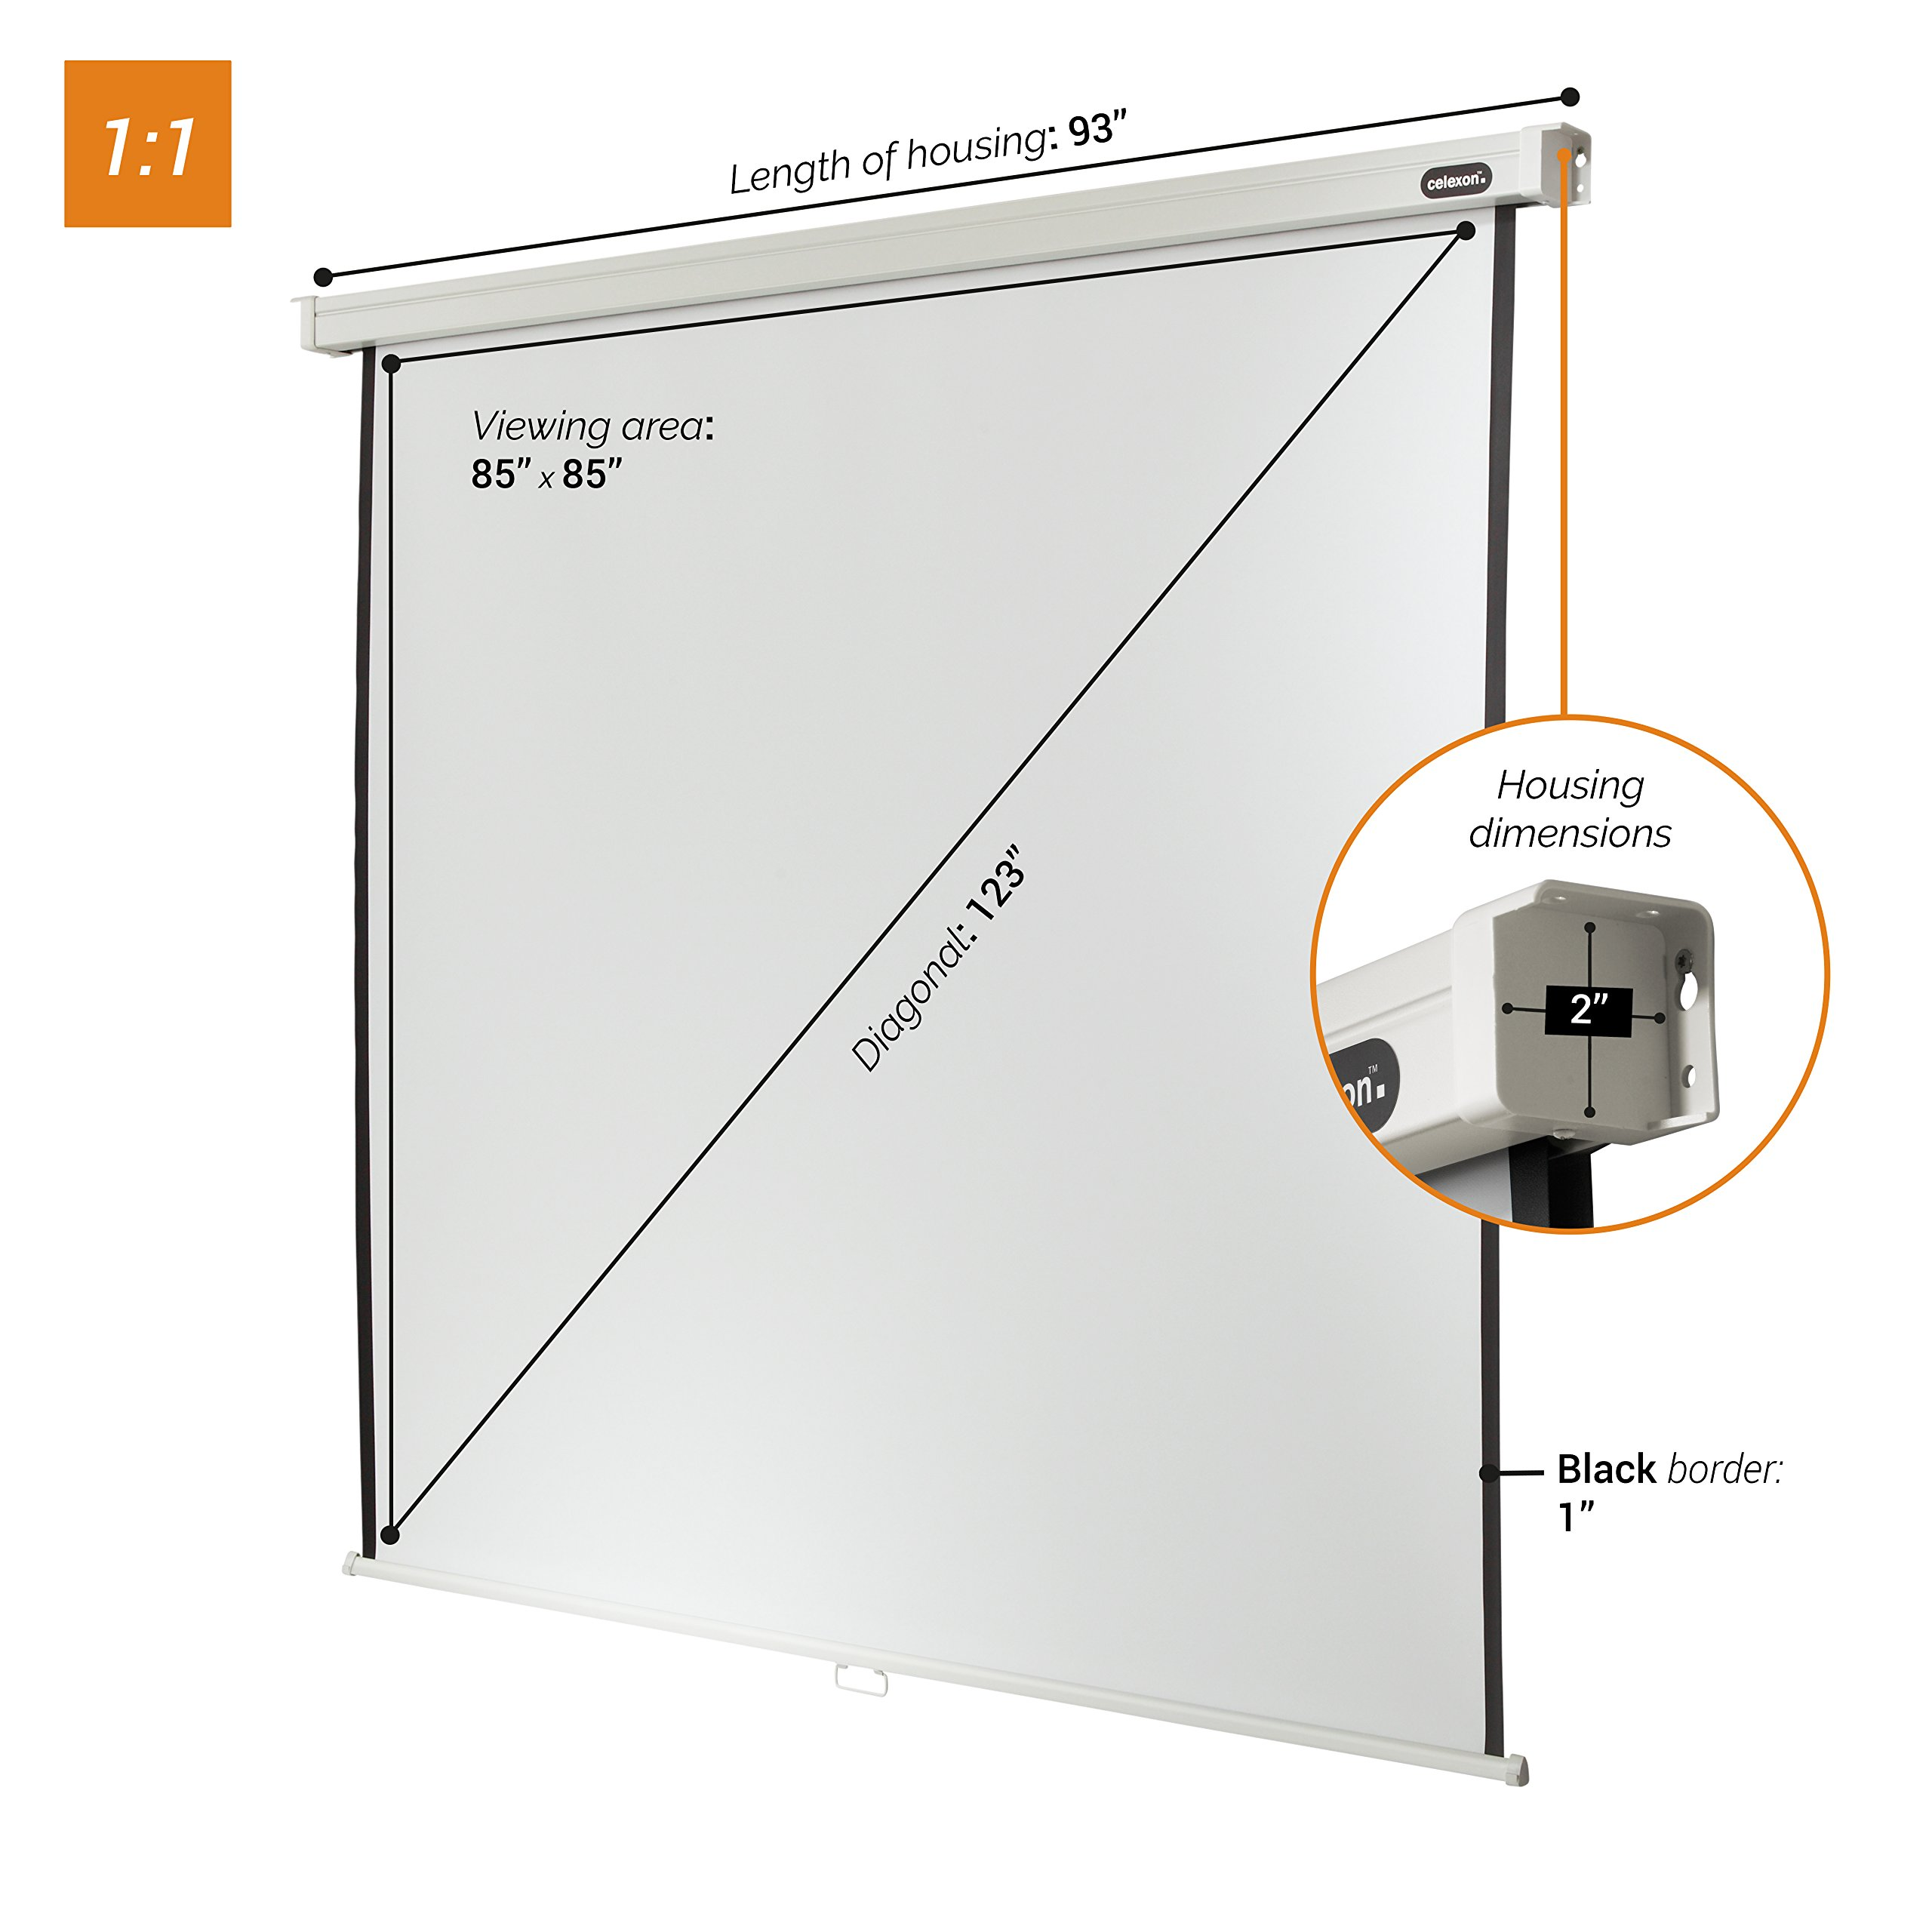 "celexon 122"" Manual Pull Down Projector Screen Manual Professional, 85 x 85 inches viewing area, 1:1 format, Gain factor of 1.2 by Celexon (Image #2)"